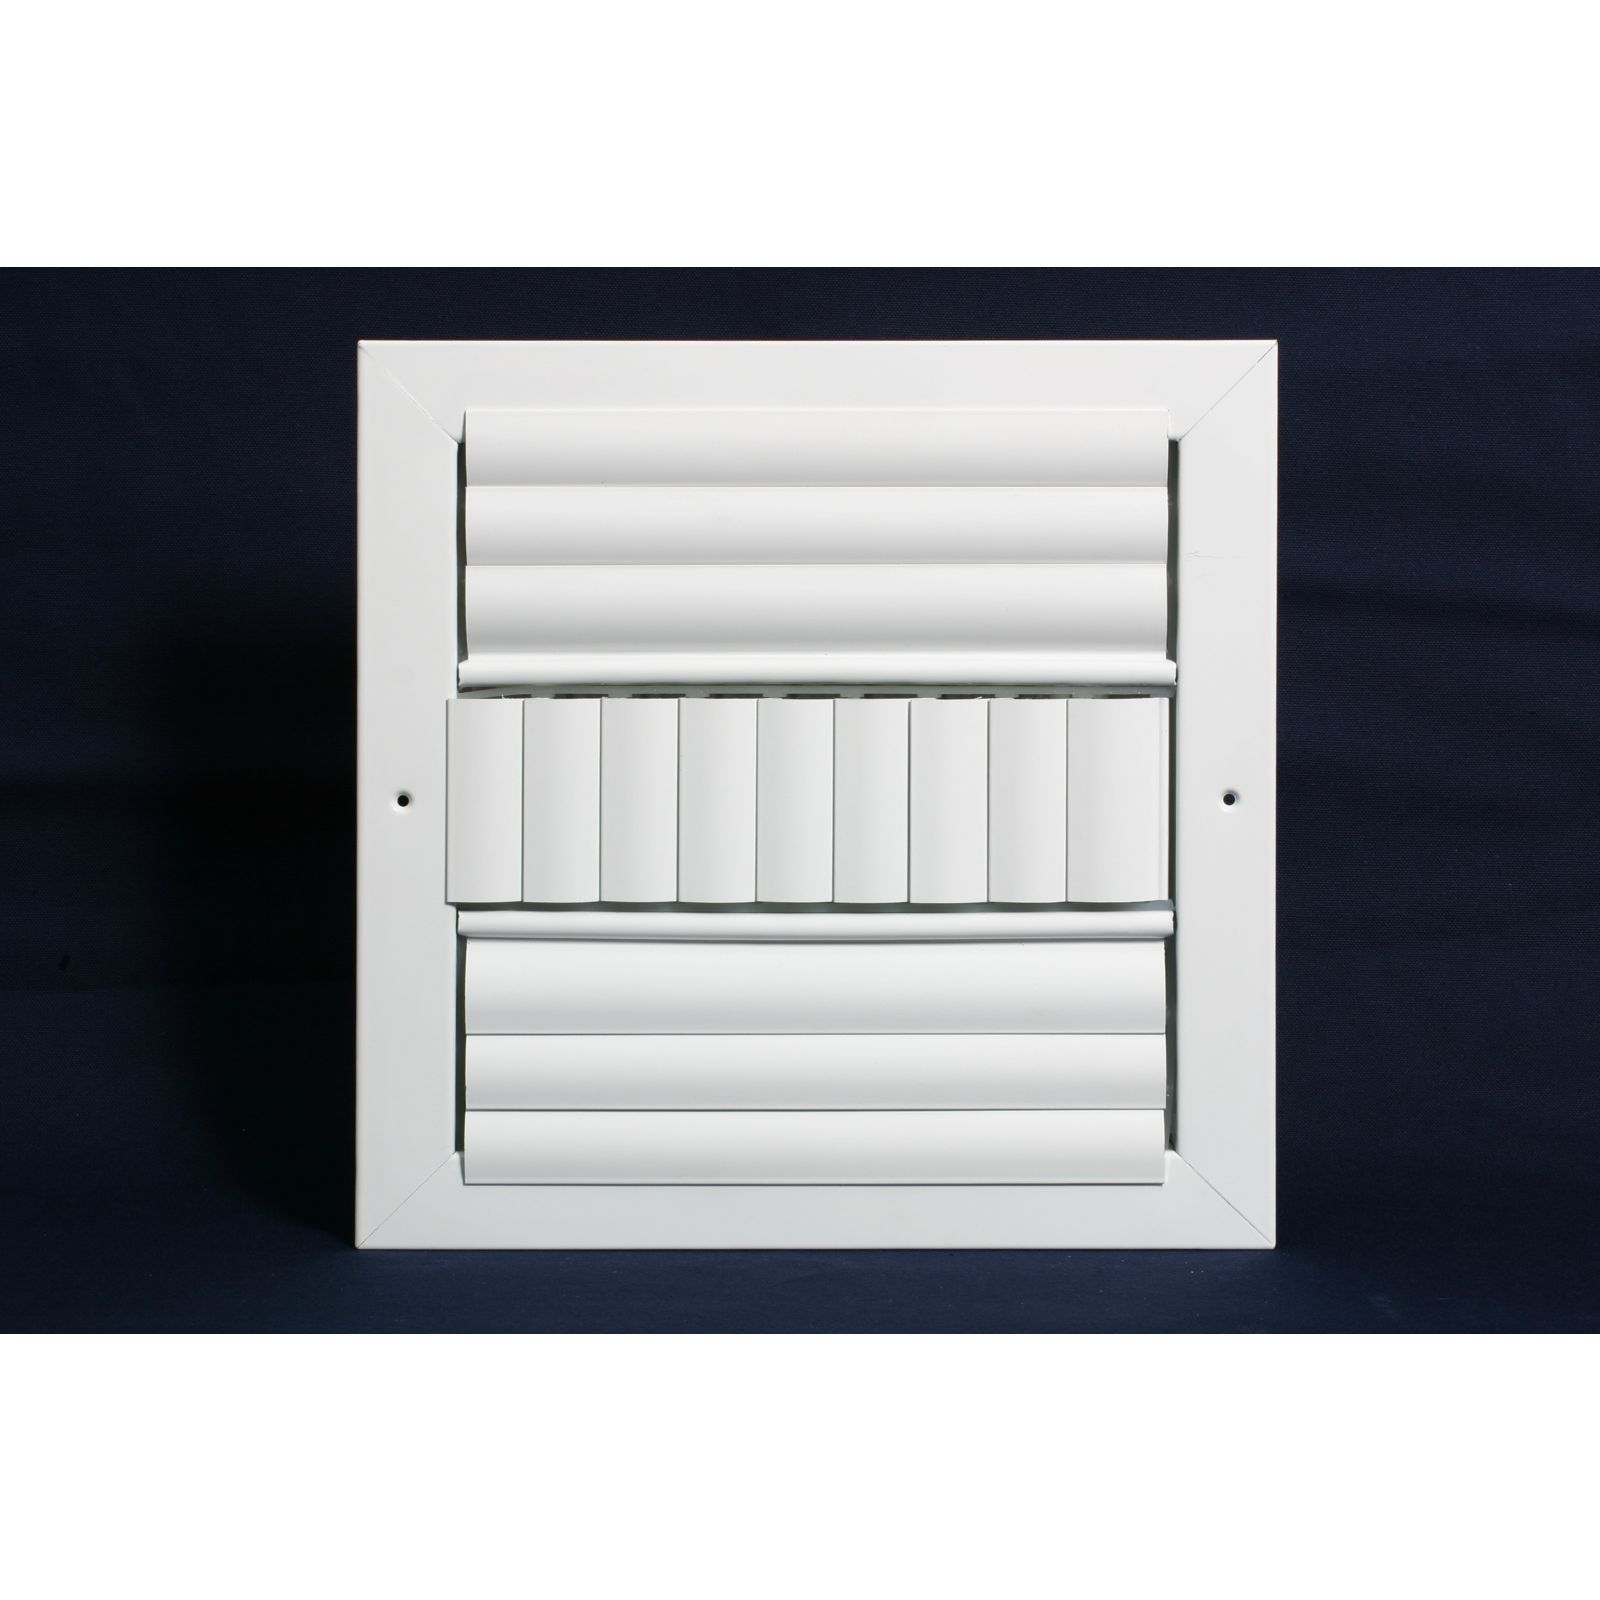 "Grille Tech CL3M1208 - Aluminum Ceiling 3Way Deflection Supply, Multi-shutter 12"" X 8"" White"